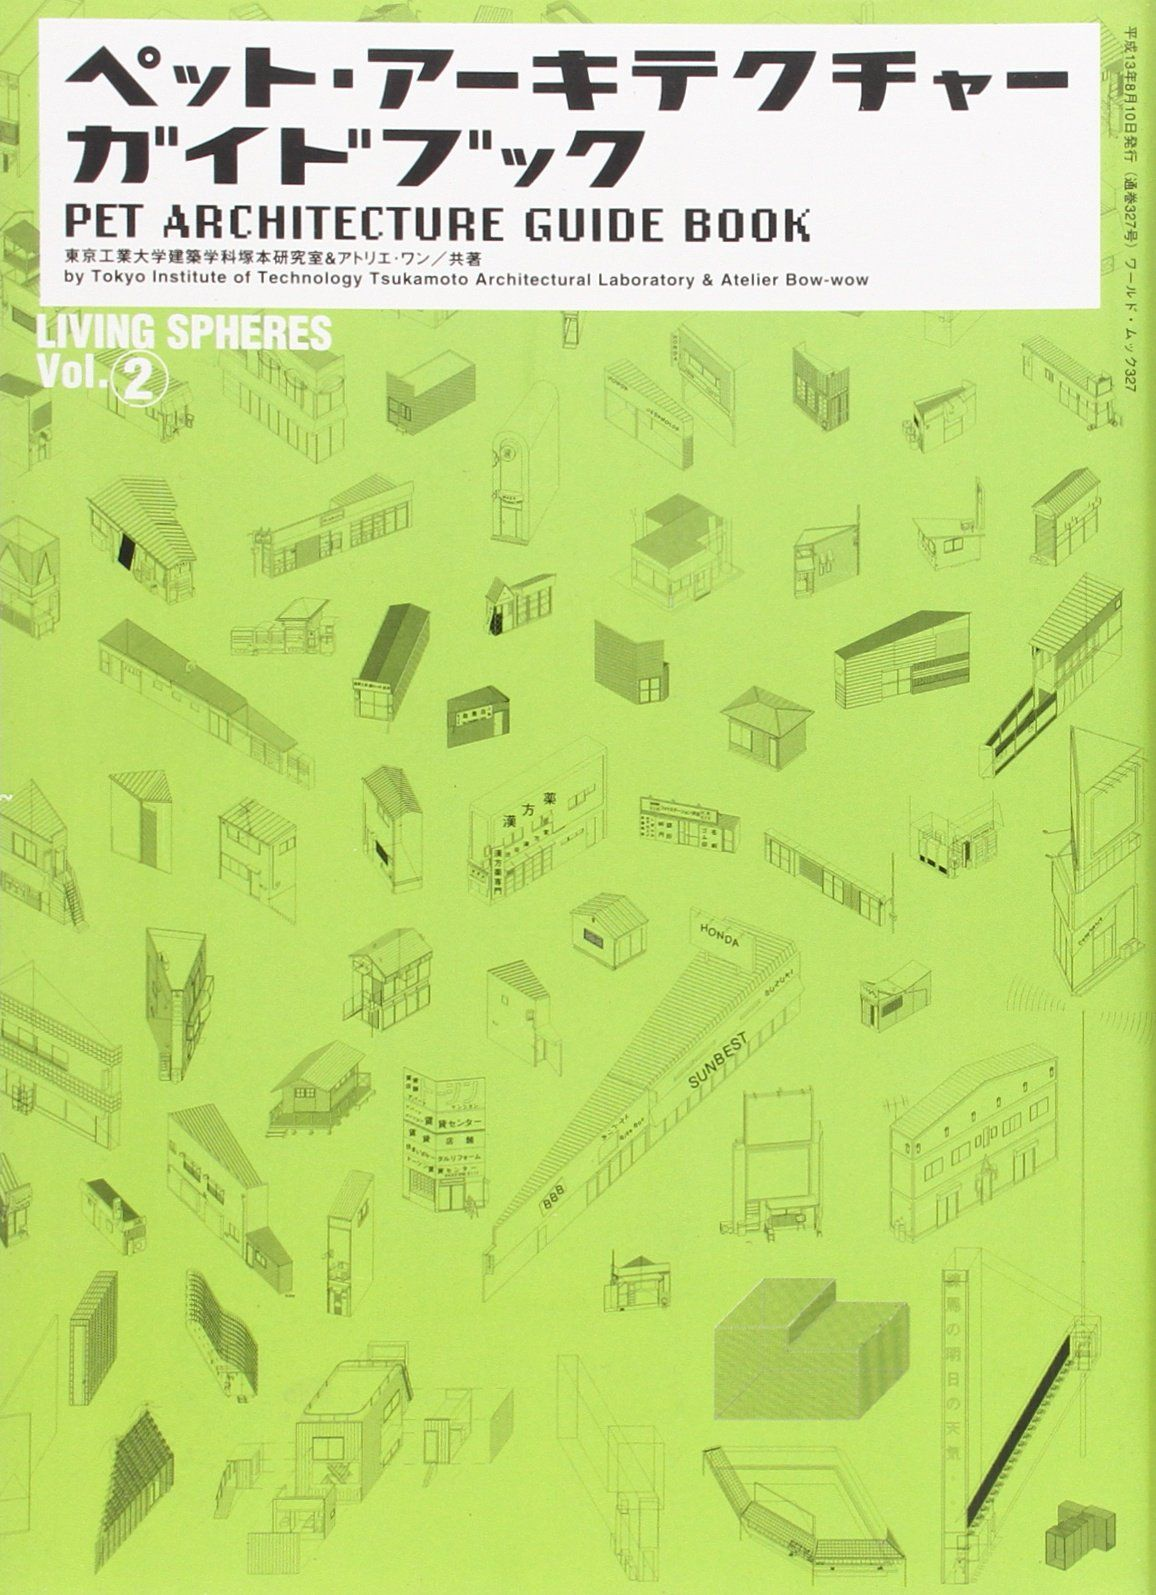 Pet architecture guide book vol 2 atelier bow wow 9784846523275 pet architecture guide book vol 2 atelier bow wow 9784846523275 amazon nvjuhfo Image collections